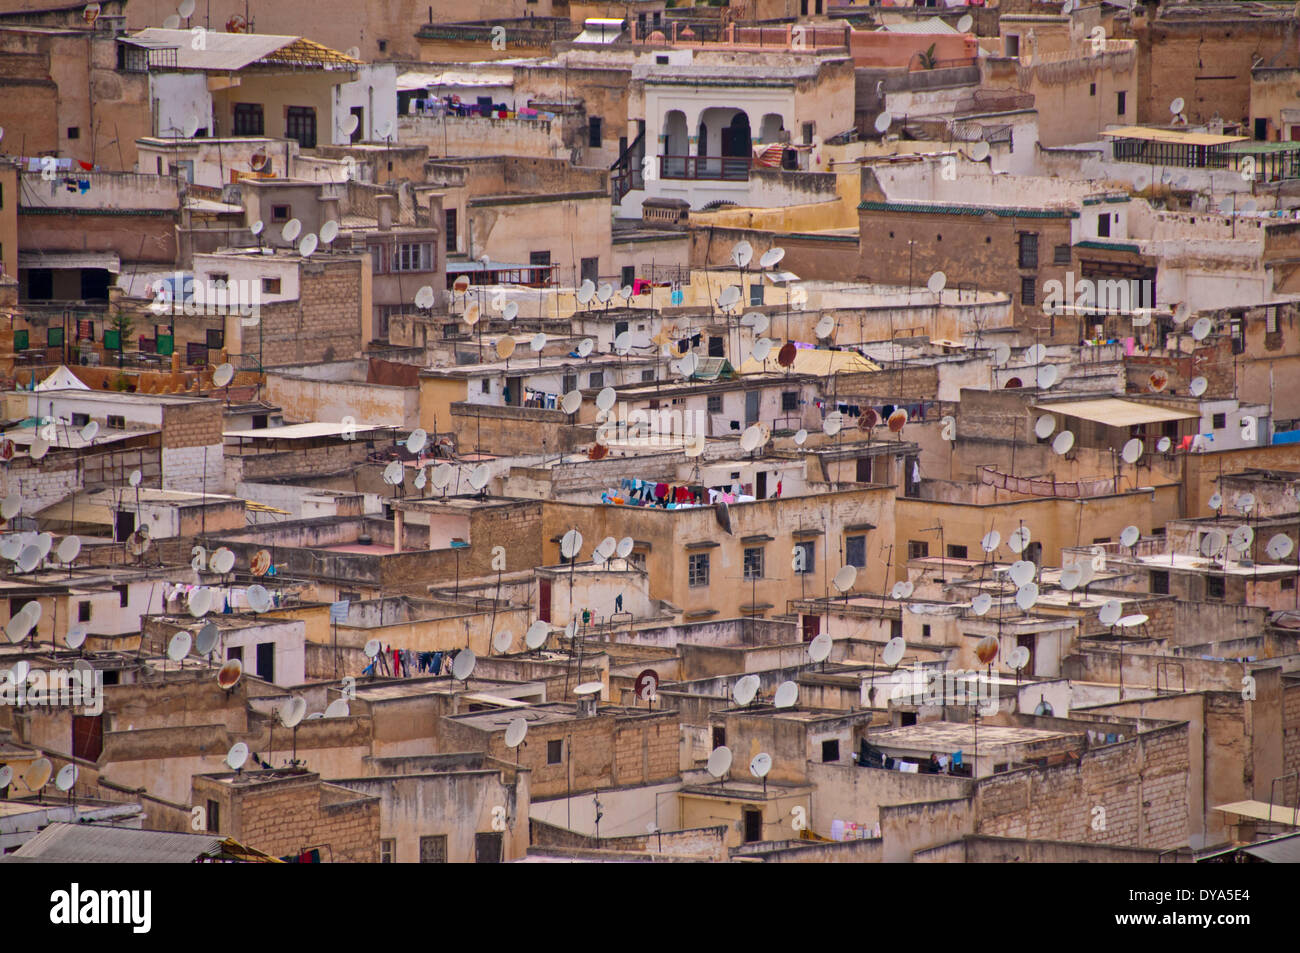 Africa, North Africa, Old Town, fez, houses, homes, Morocco, Medina, satellite dishes, dish aerial, roofs, Stock Photo